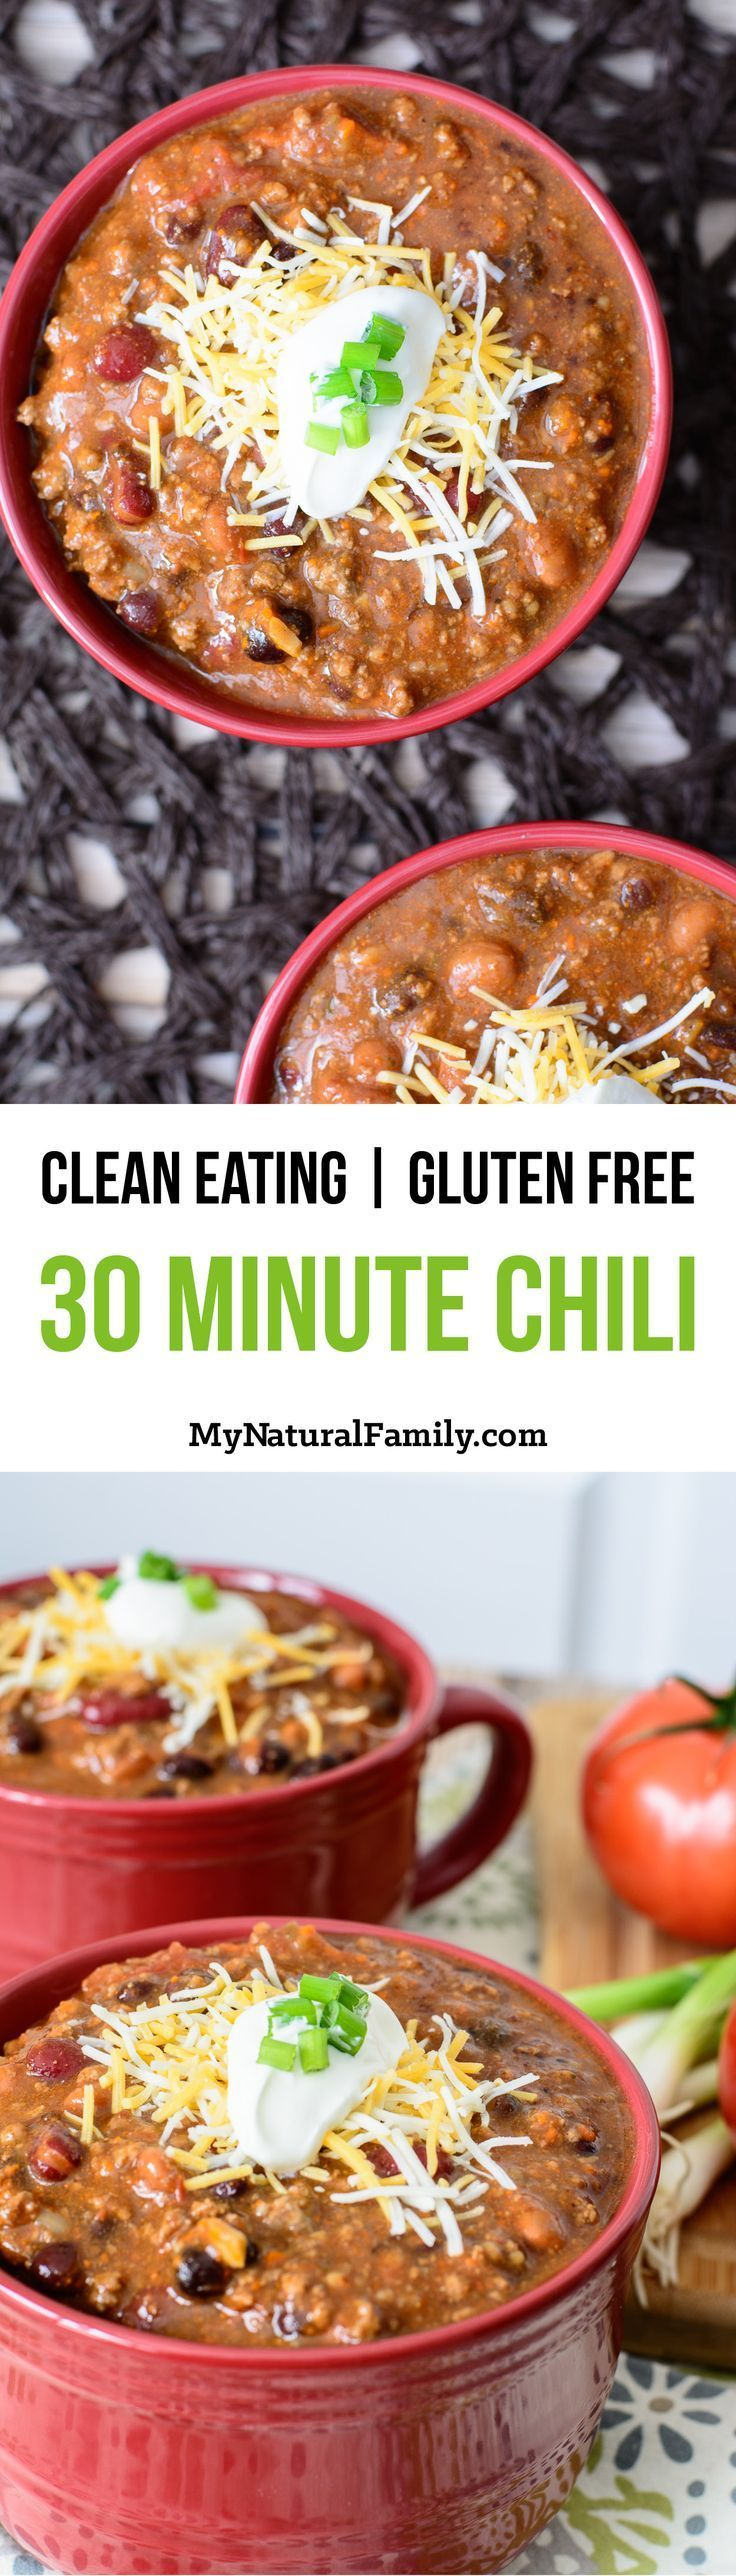 Super-Quick 30 Minute Chili Recipe {Gluten Free, Clean Eating} - I love how easy it is to throw this together. You literally just dump in a bunch of cans of food and add some seasoning. My kids love this chili, especially on navajo tacos.